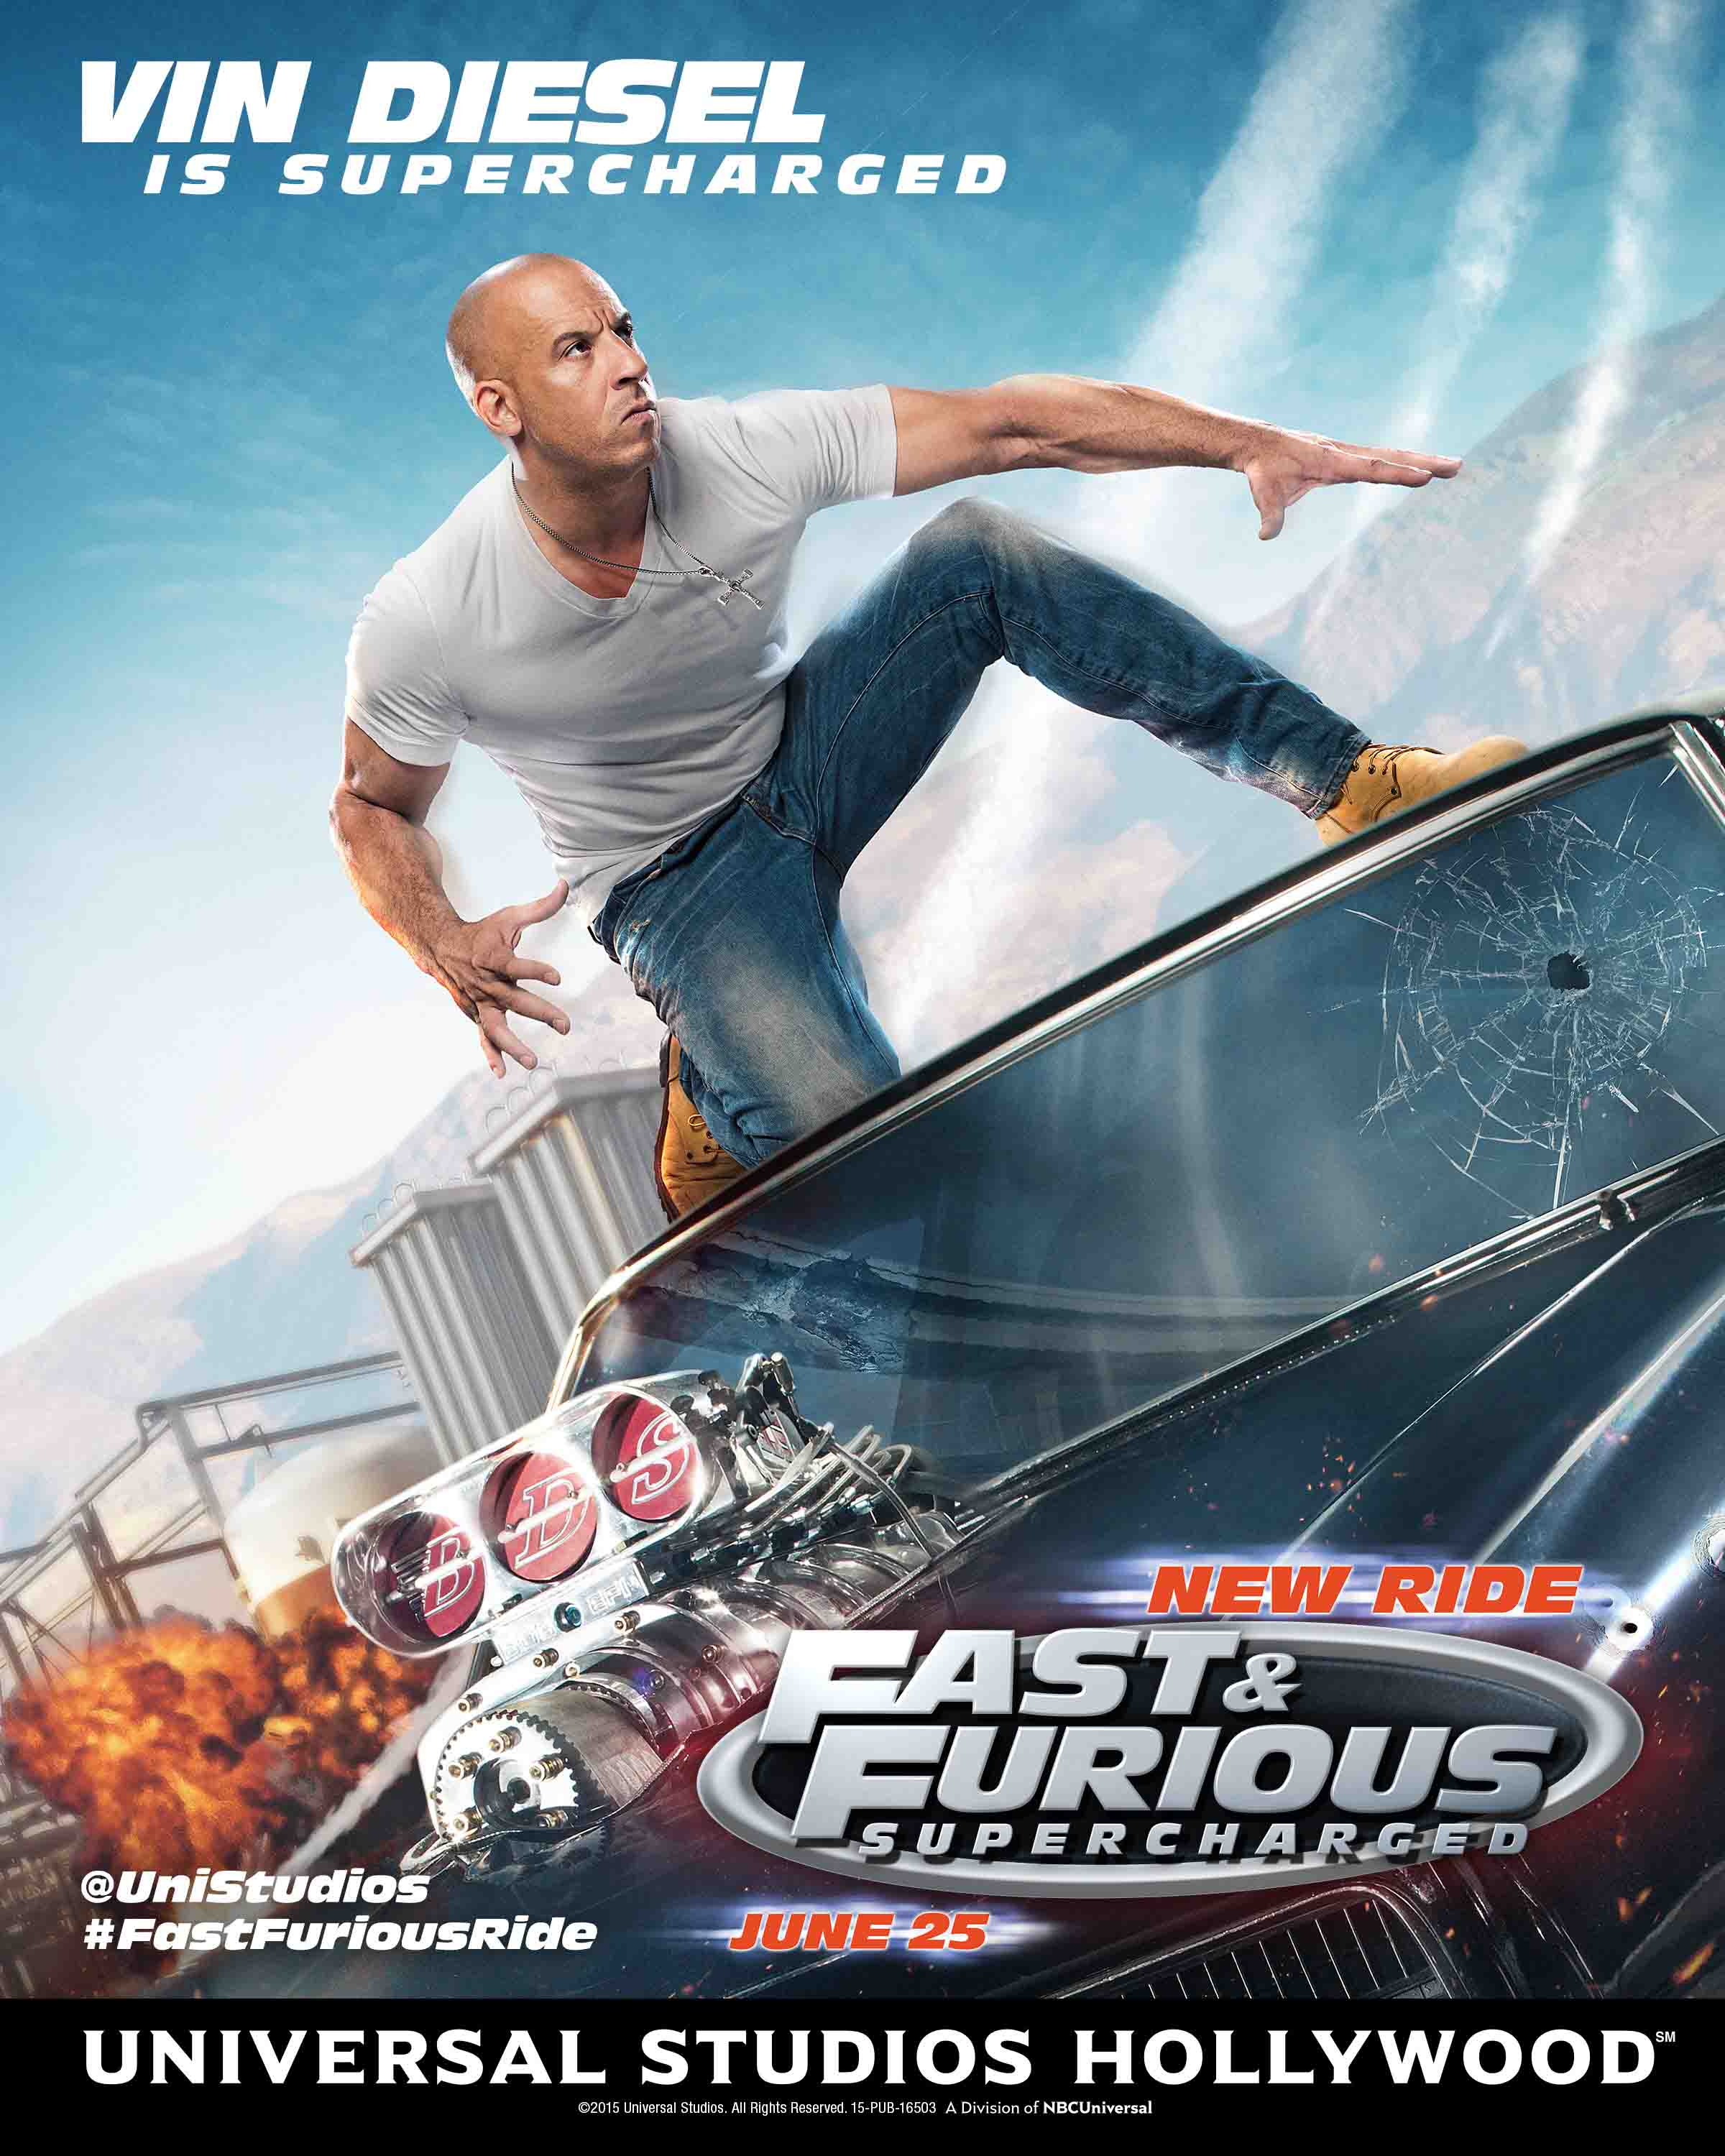 Fast Furious Supercharged Vin Diesel Ride Poster